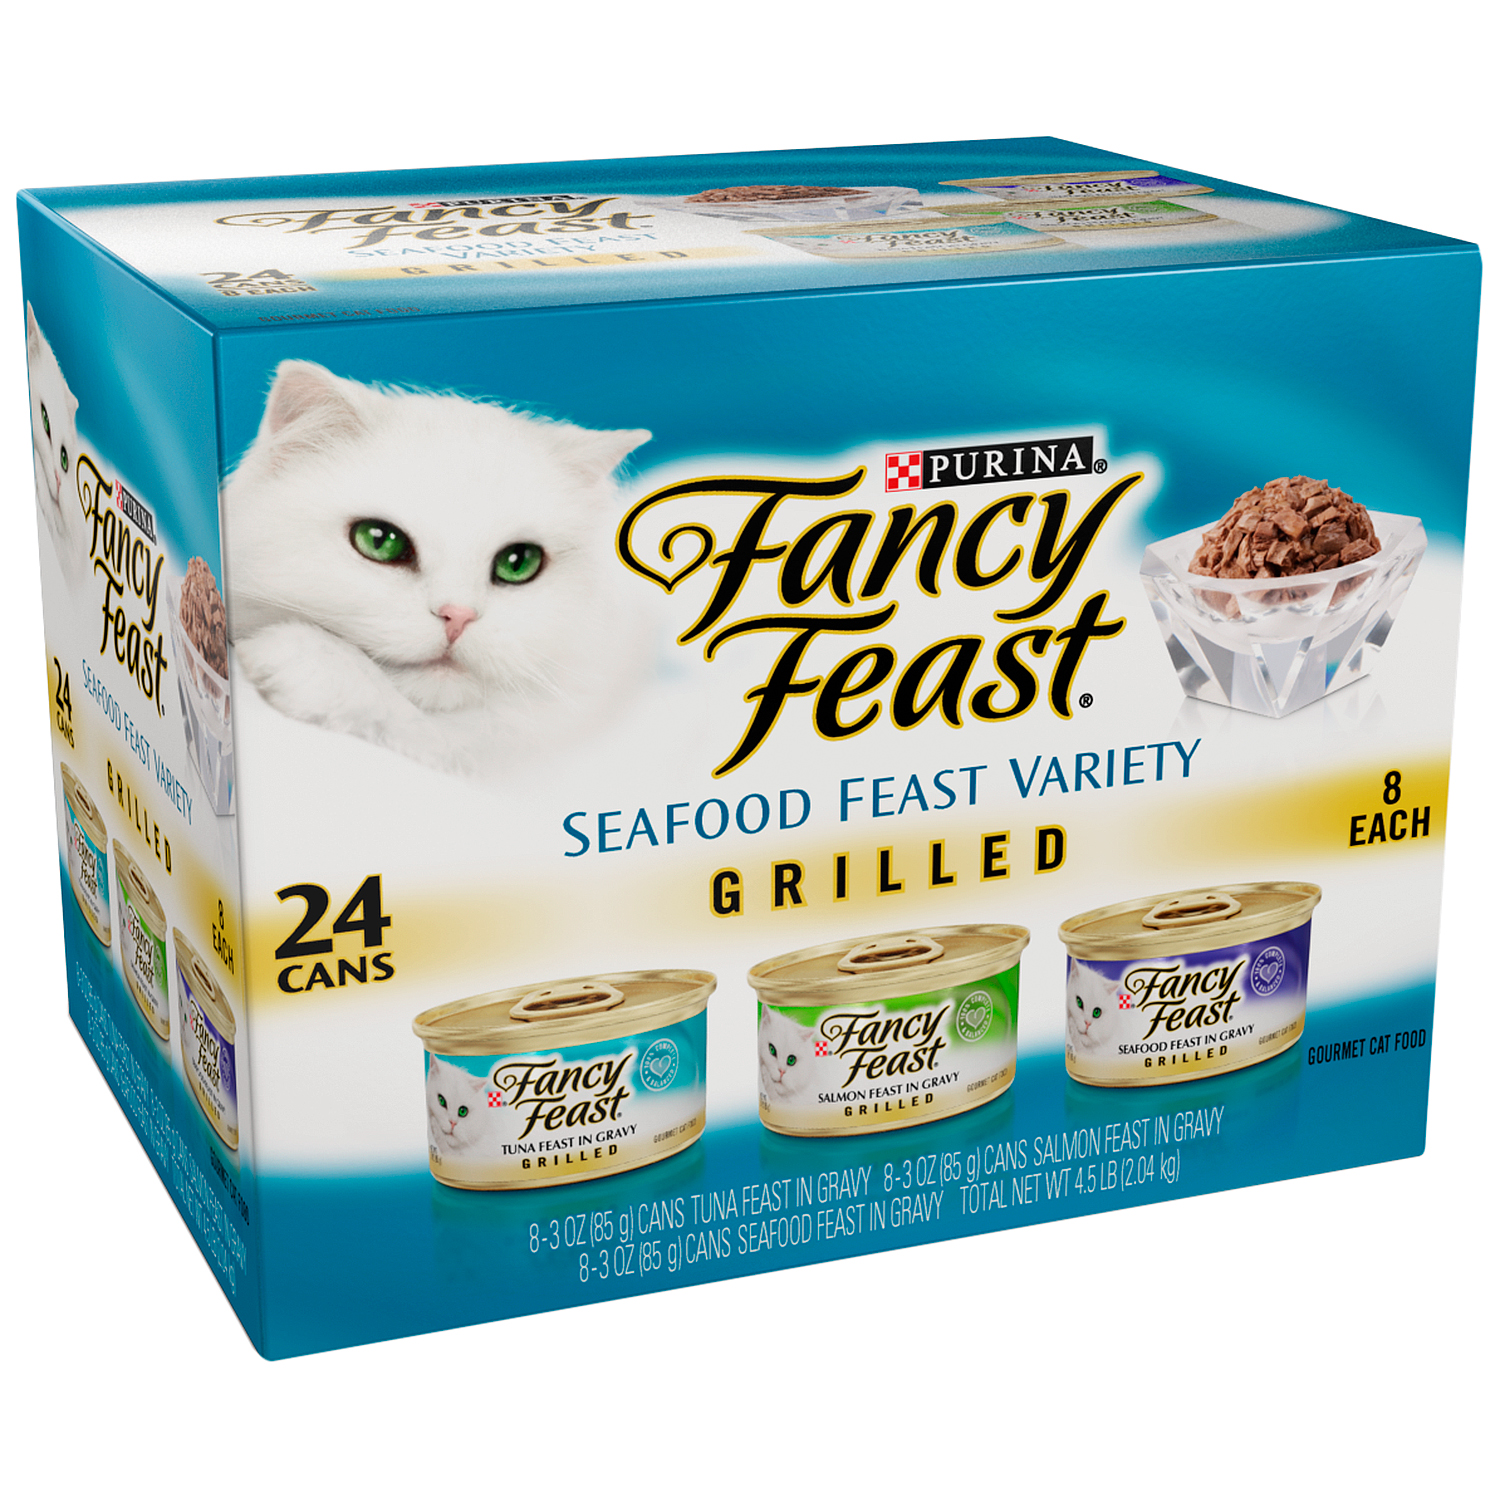 Purina Fancy Feast Grilled Seafood Feast Variety Cat Food 24-3 oz. Cans